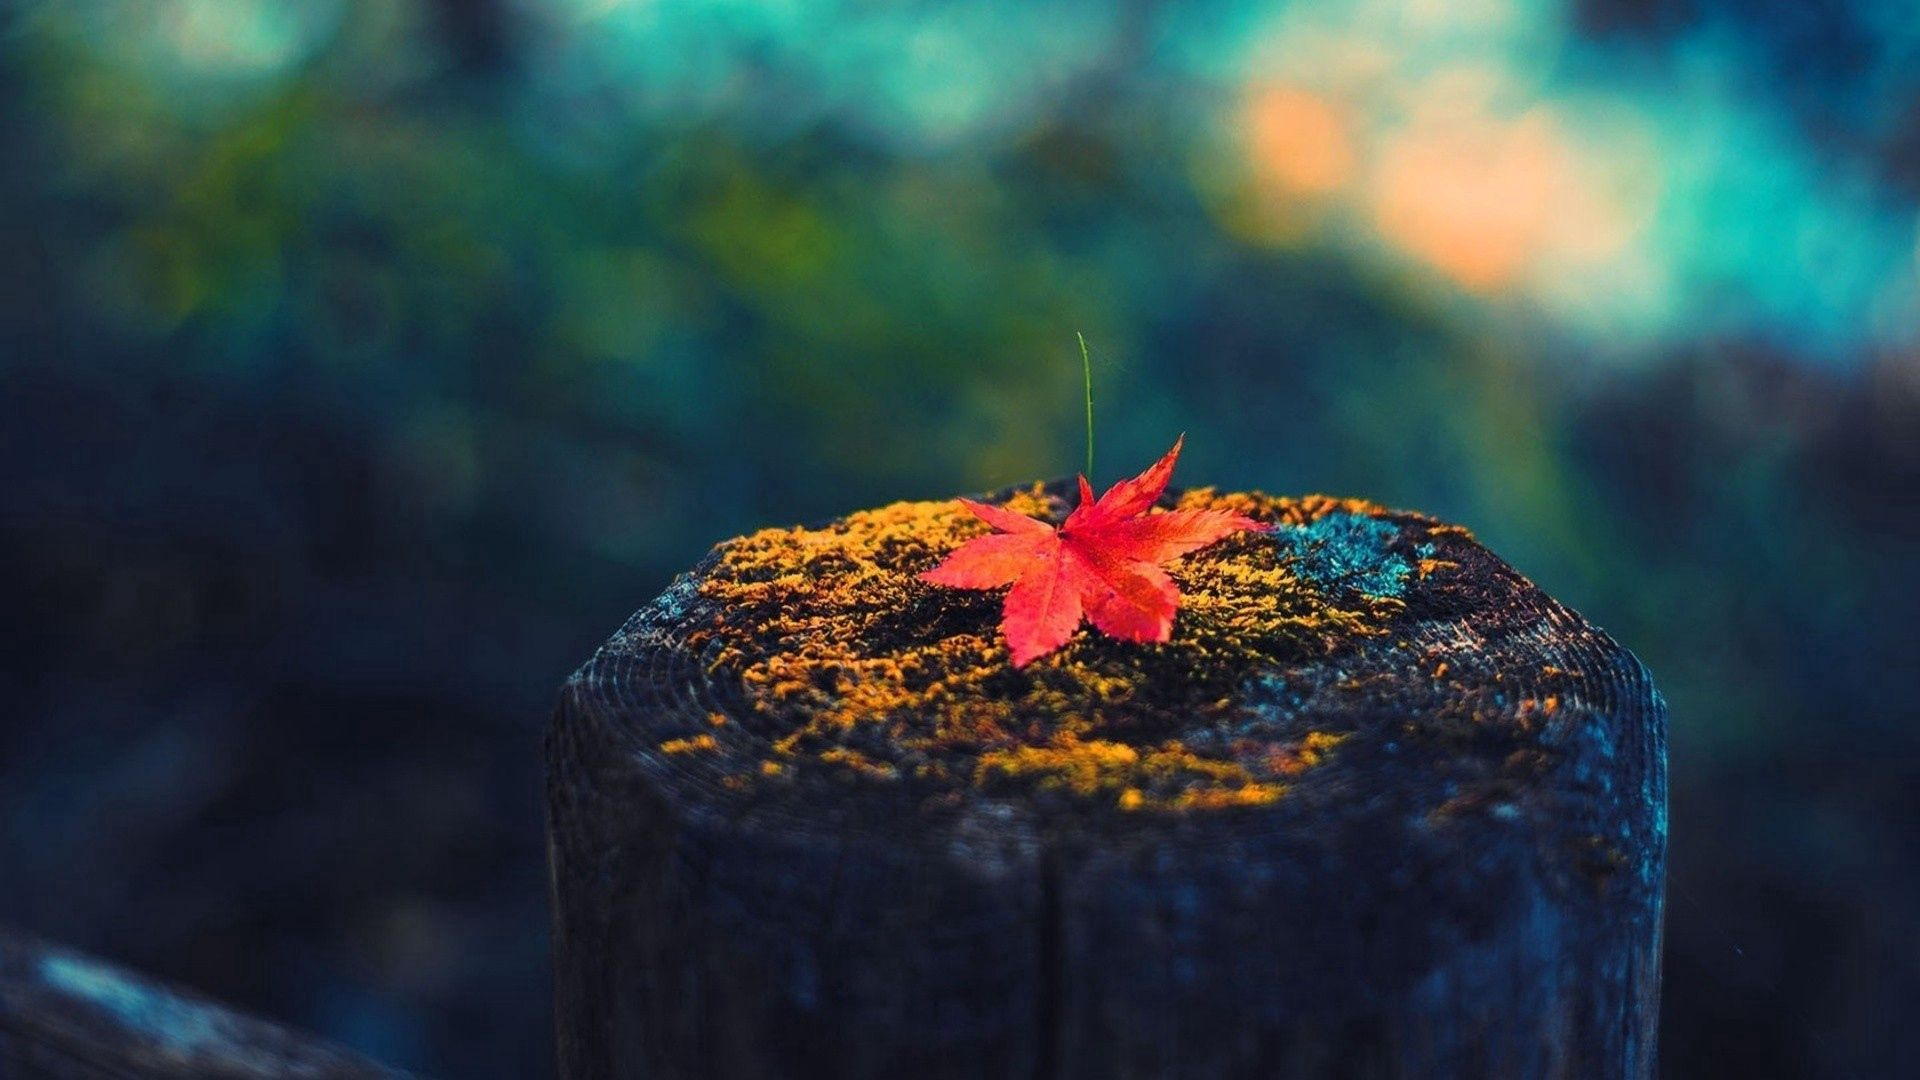 132278 download wallpaper Macro, Sheet, Leaf, Maple, Stump, Dry screensavers and pictures for free